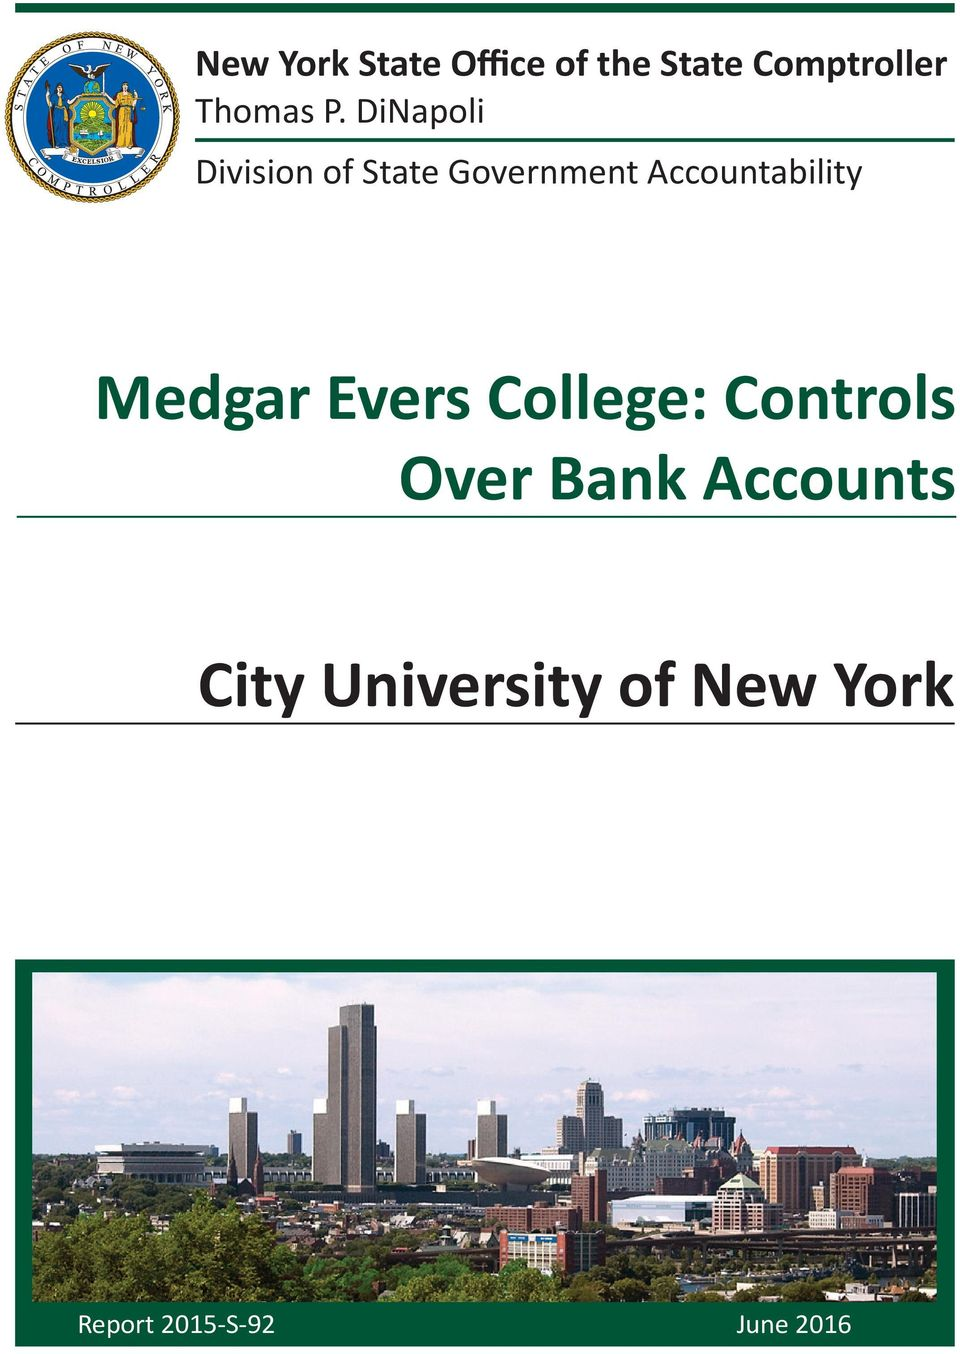 Accountability Medgar Evers College: Controls Over